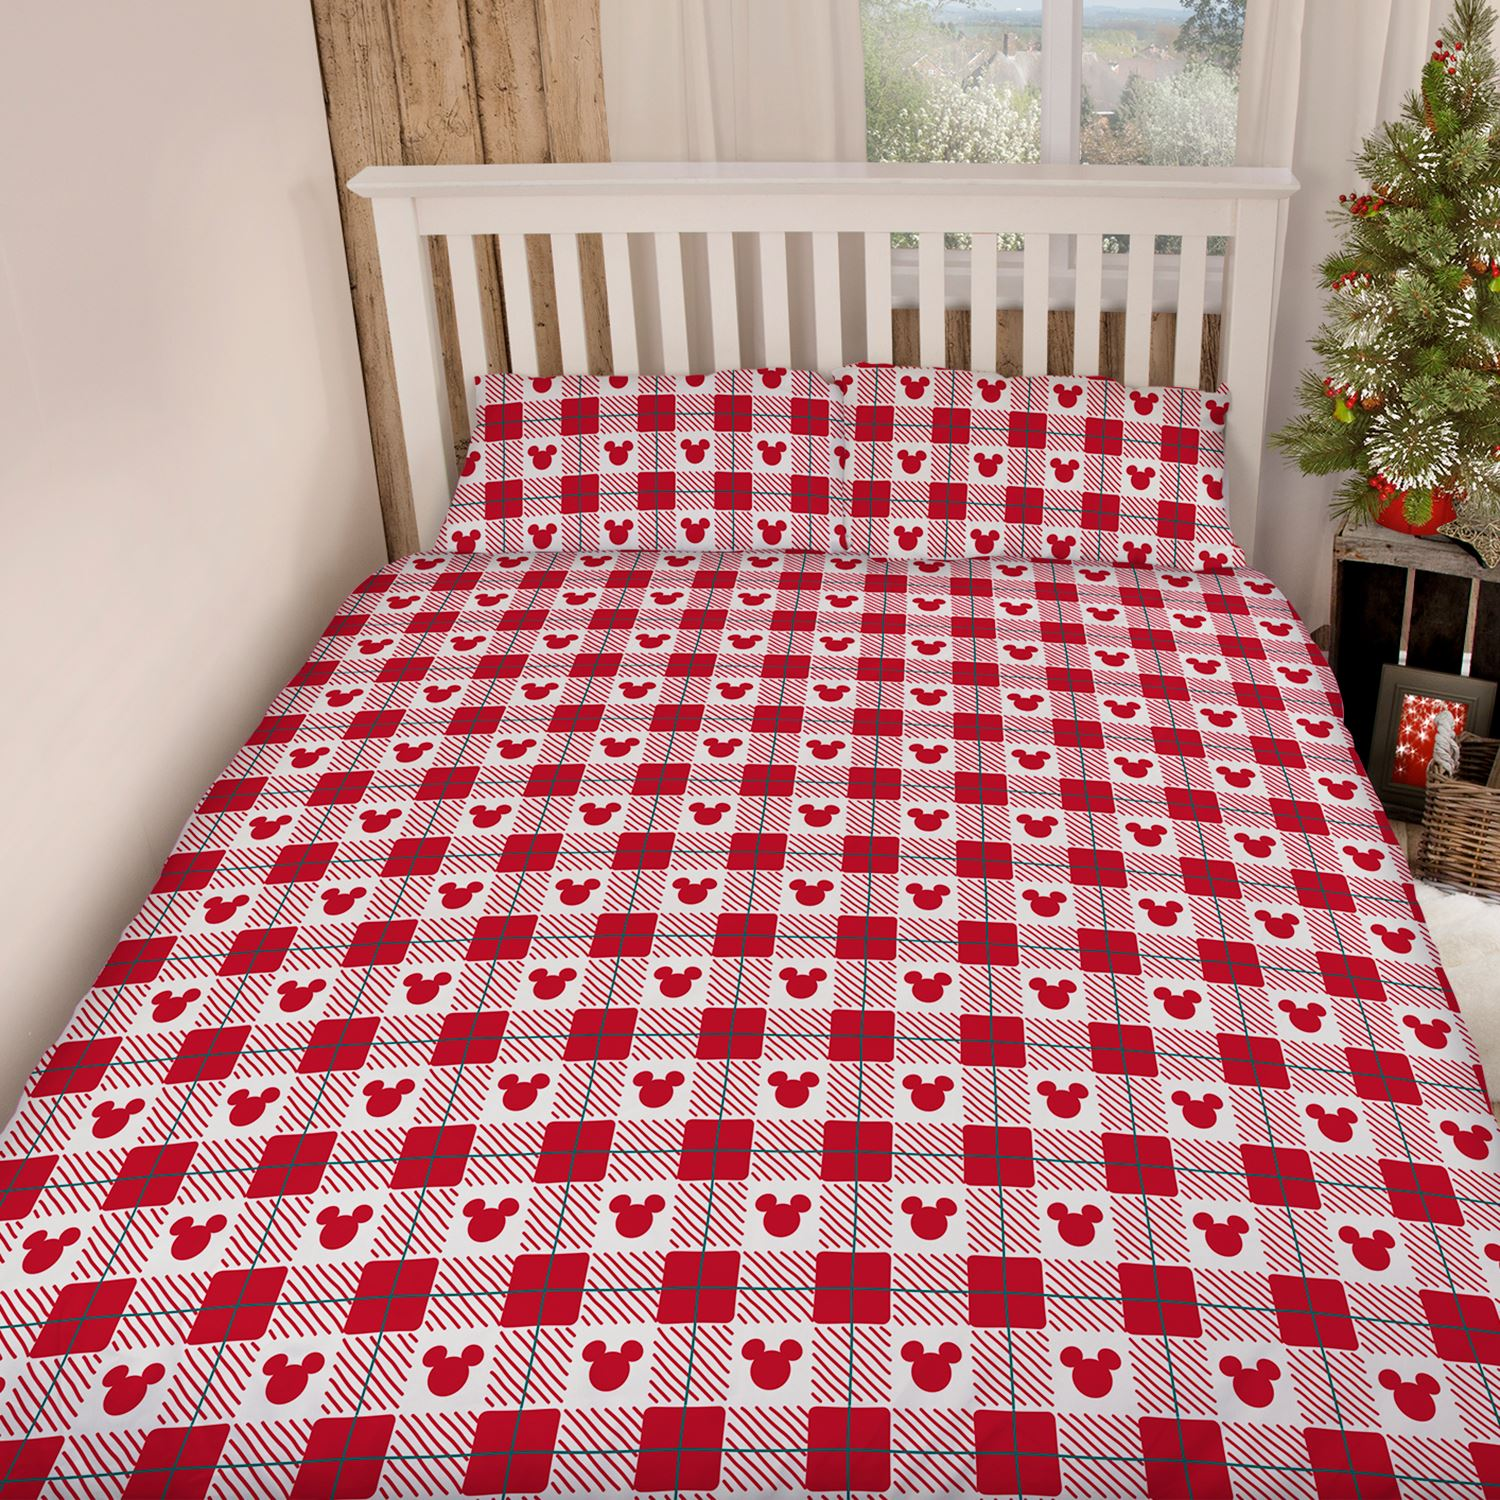 mickey and minnie mouse christmas king size duvet cover set official new ebay. Black Bedroom Furniture Sets. Home Design Ideas